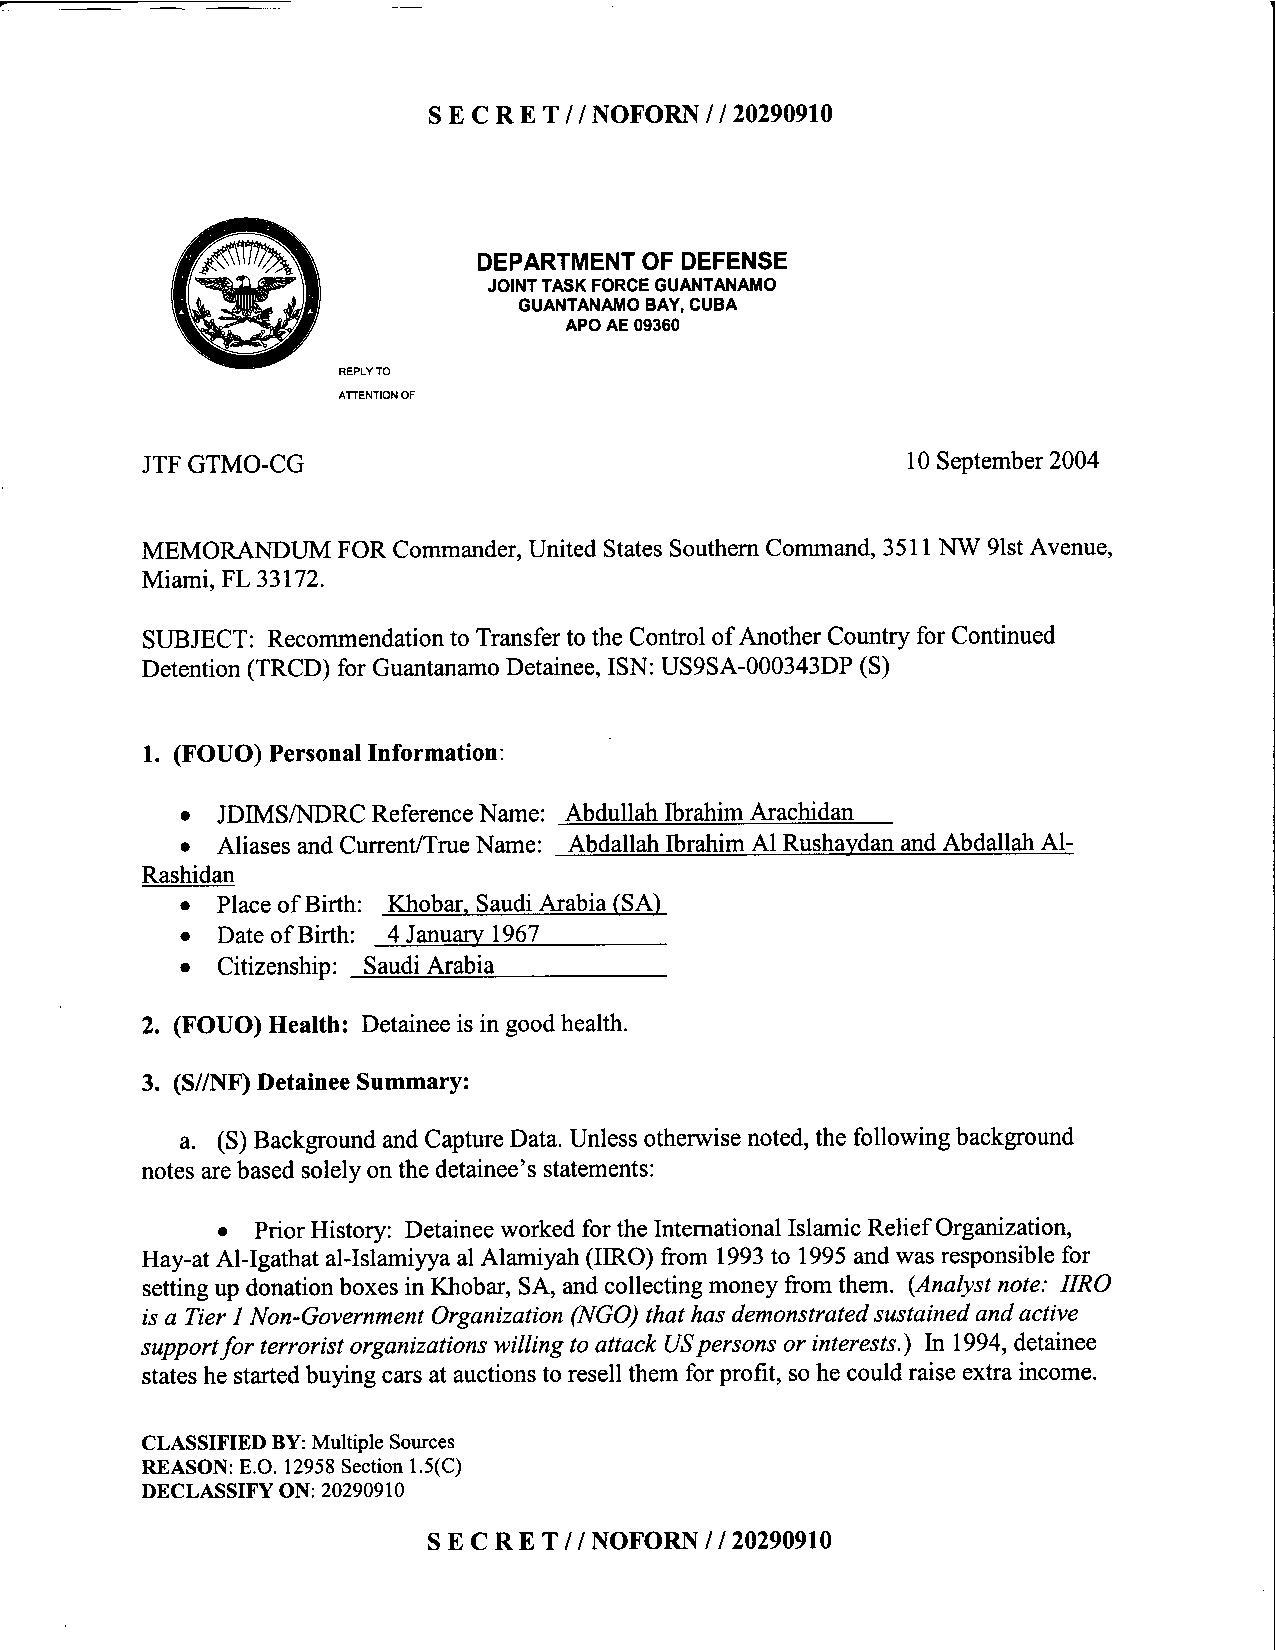 ISN 343's Guantanamo detainee assessment.pdf